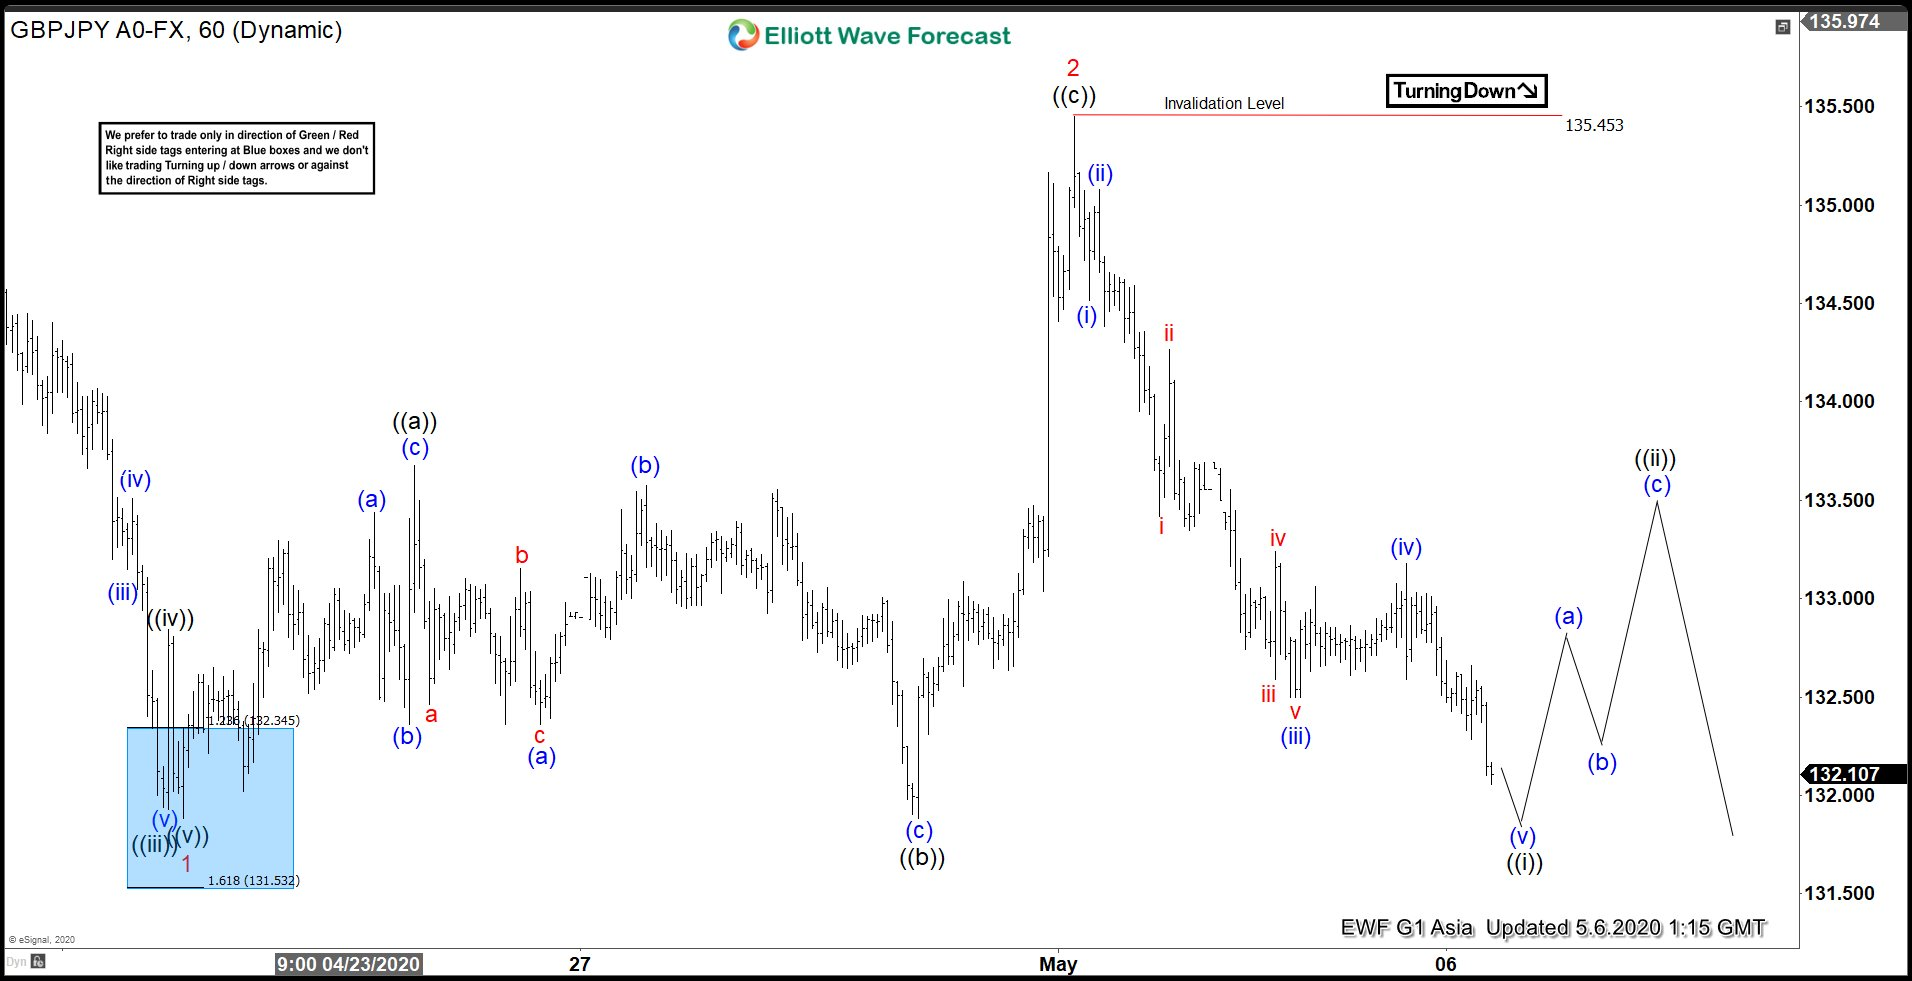 Elliott Wave View: GBPJPY Decline Extends in Wave 3